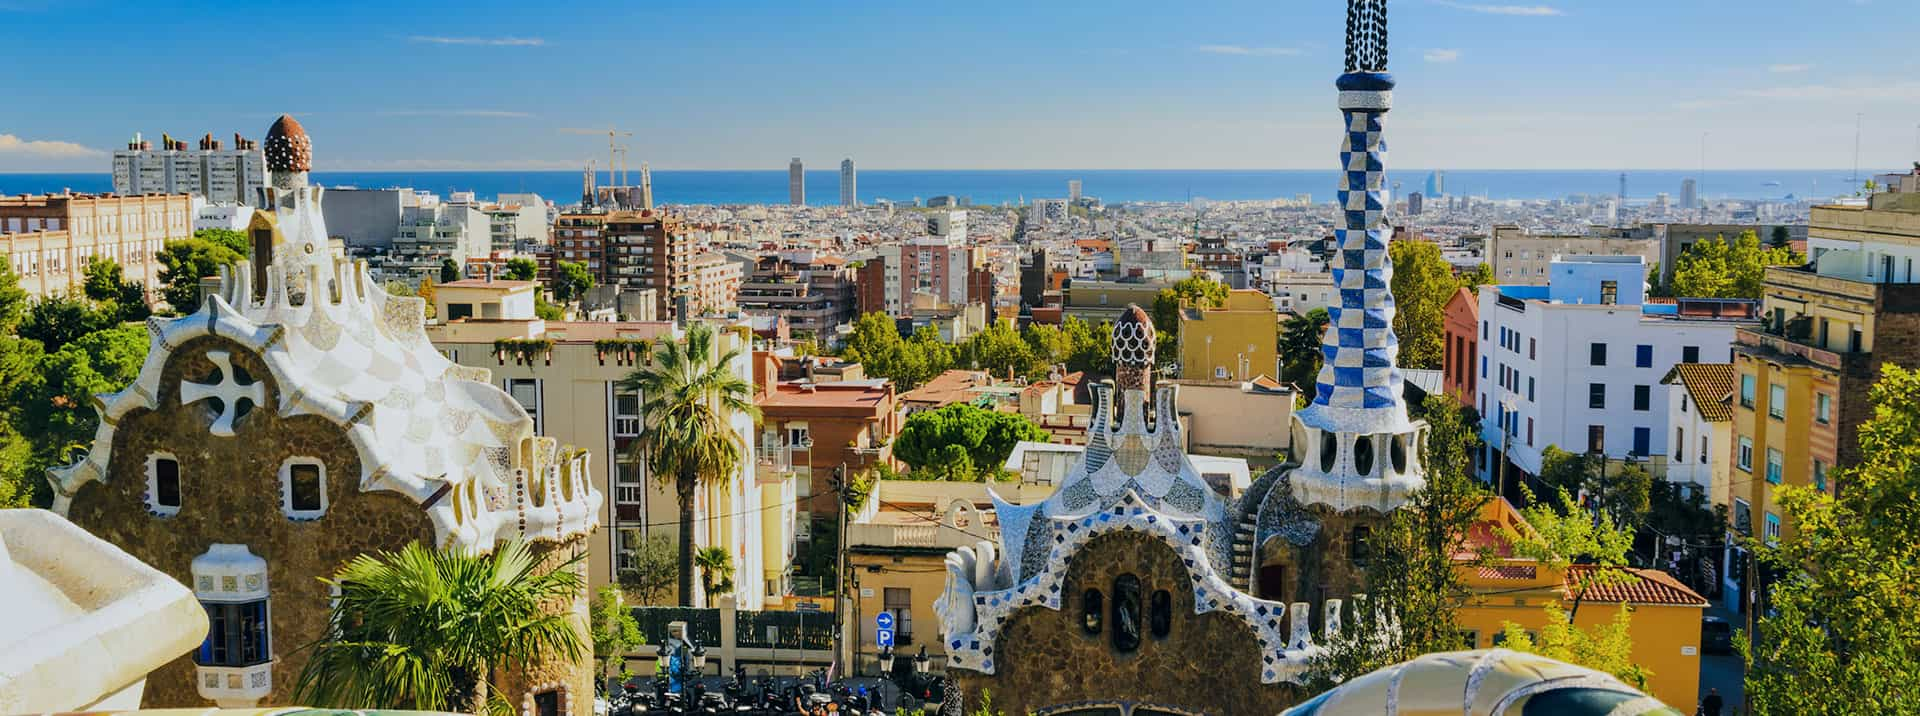 Featured-Image-Spain-Barcelona